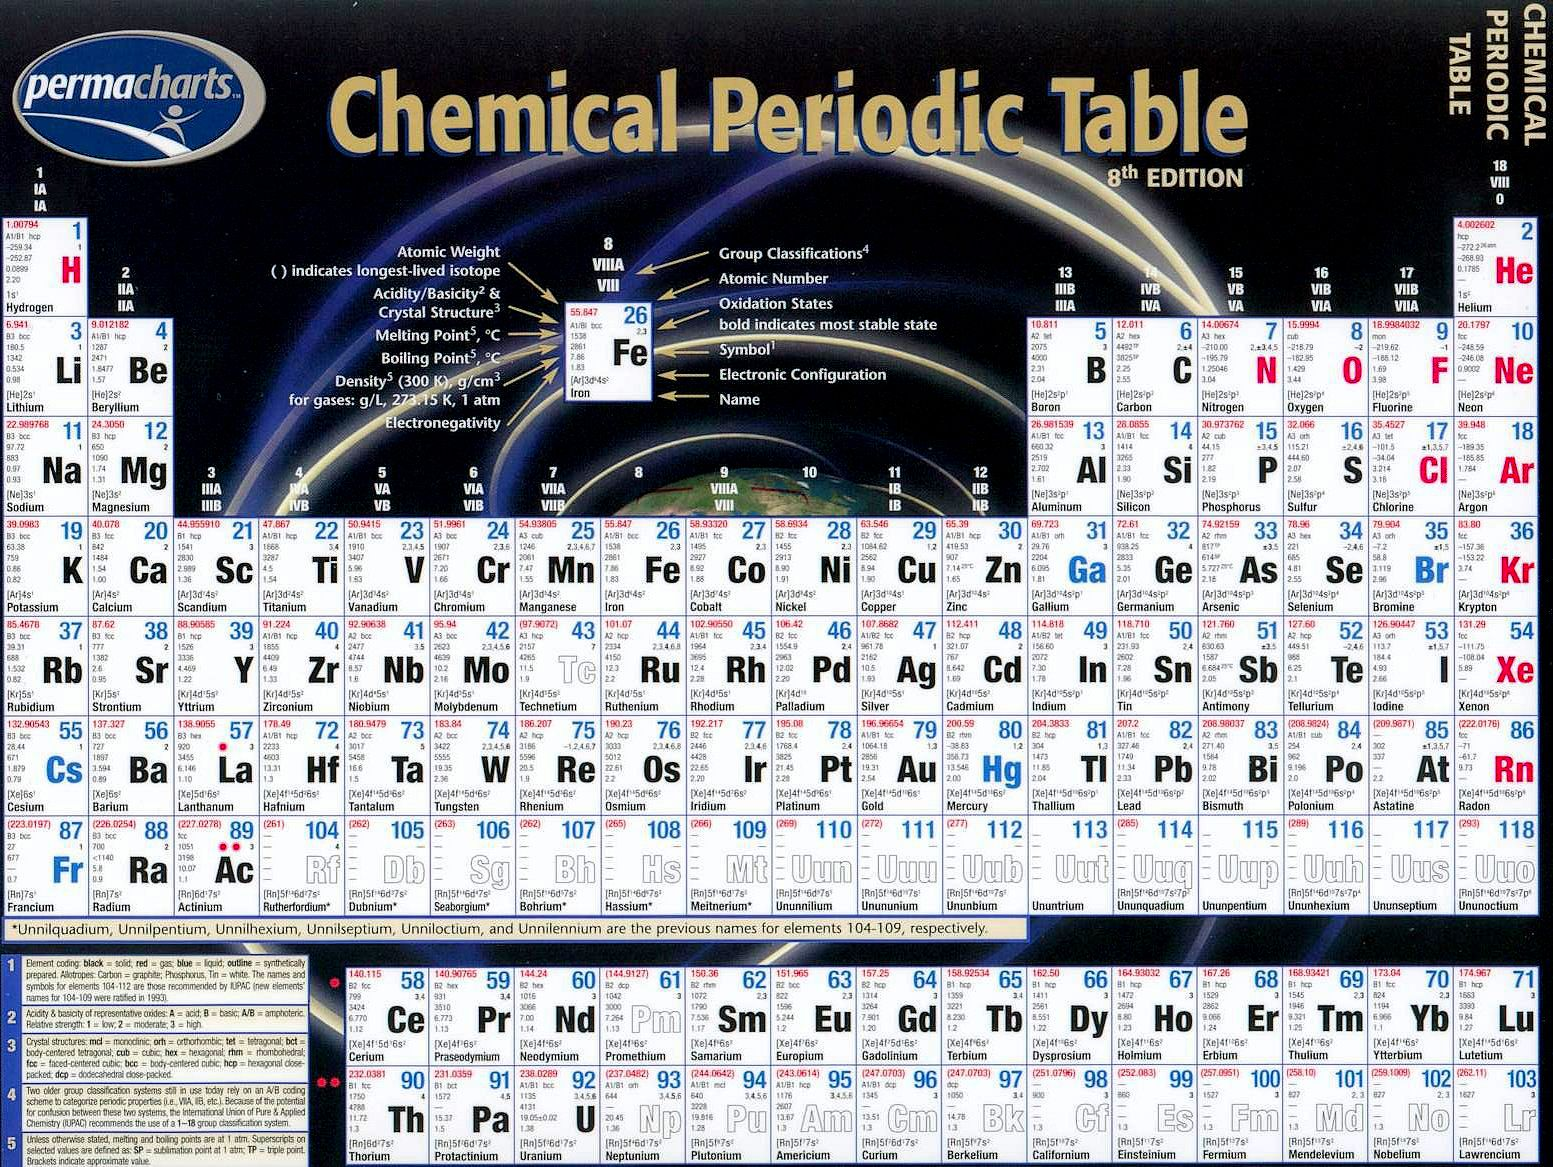 Perma charts chemical periodic table 8th edition periodic tables perma charts chemical periodic table 8th edition gamestrikefo Gallery